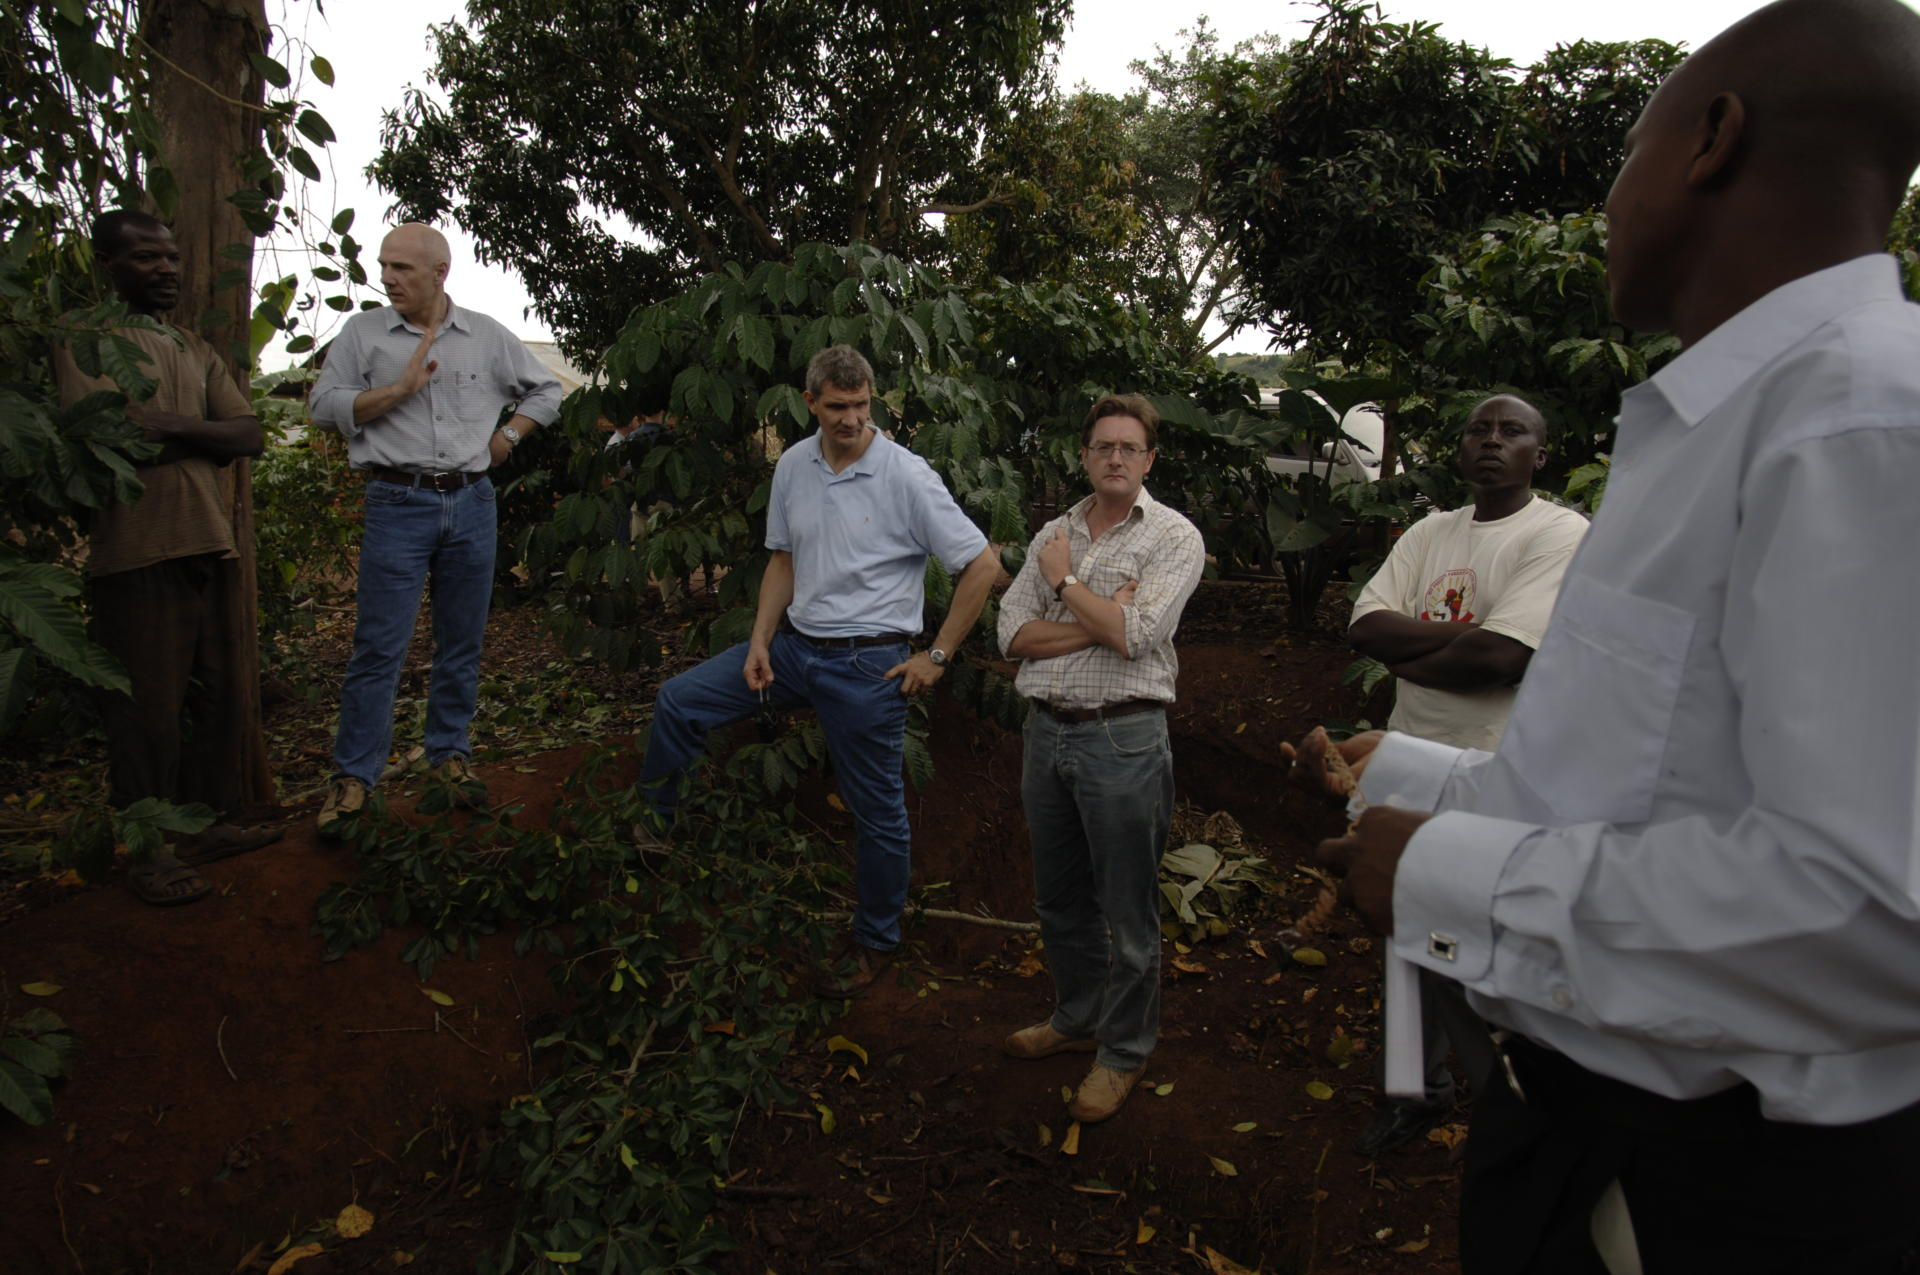 Meeting smallholder coffee farmers in the field for more coffee sustainability